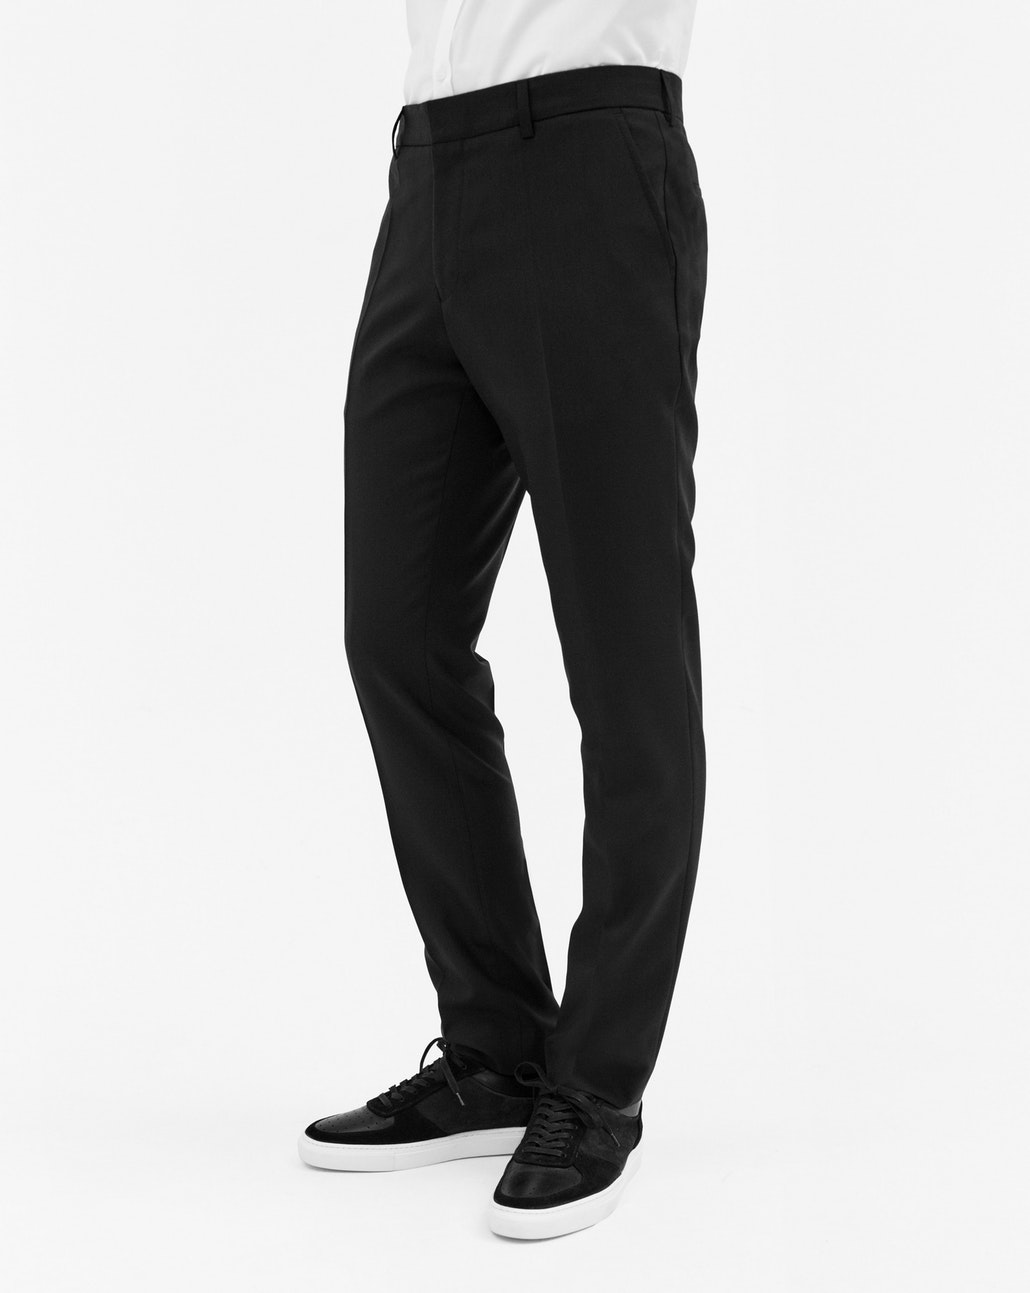 Filippa K Men's Men's Fall Fashion Essentials